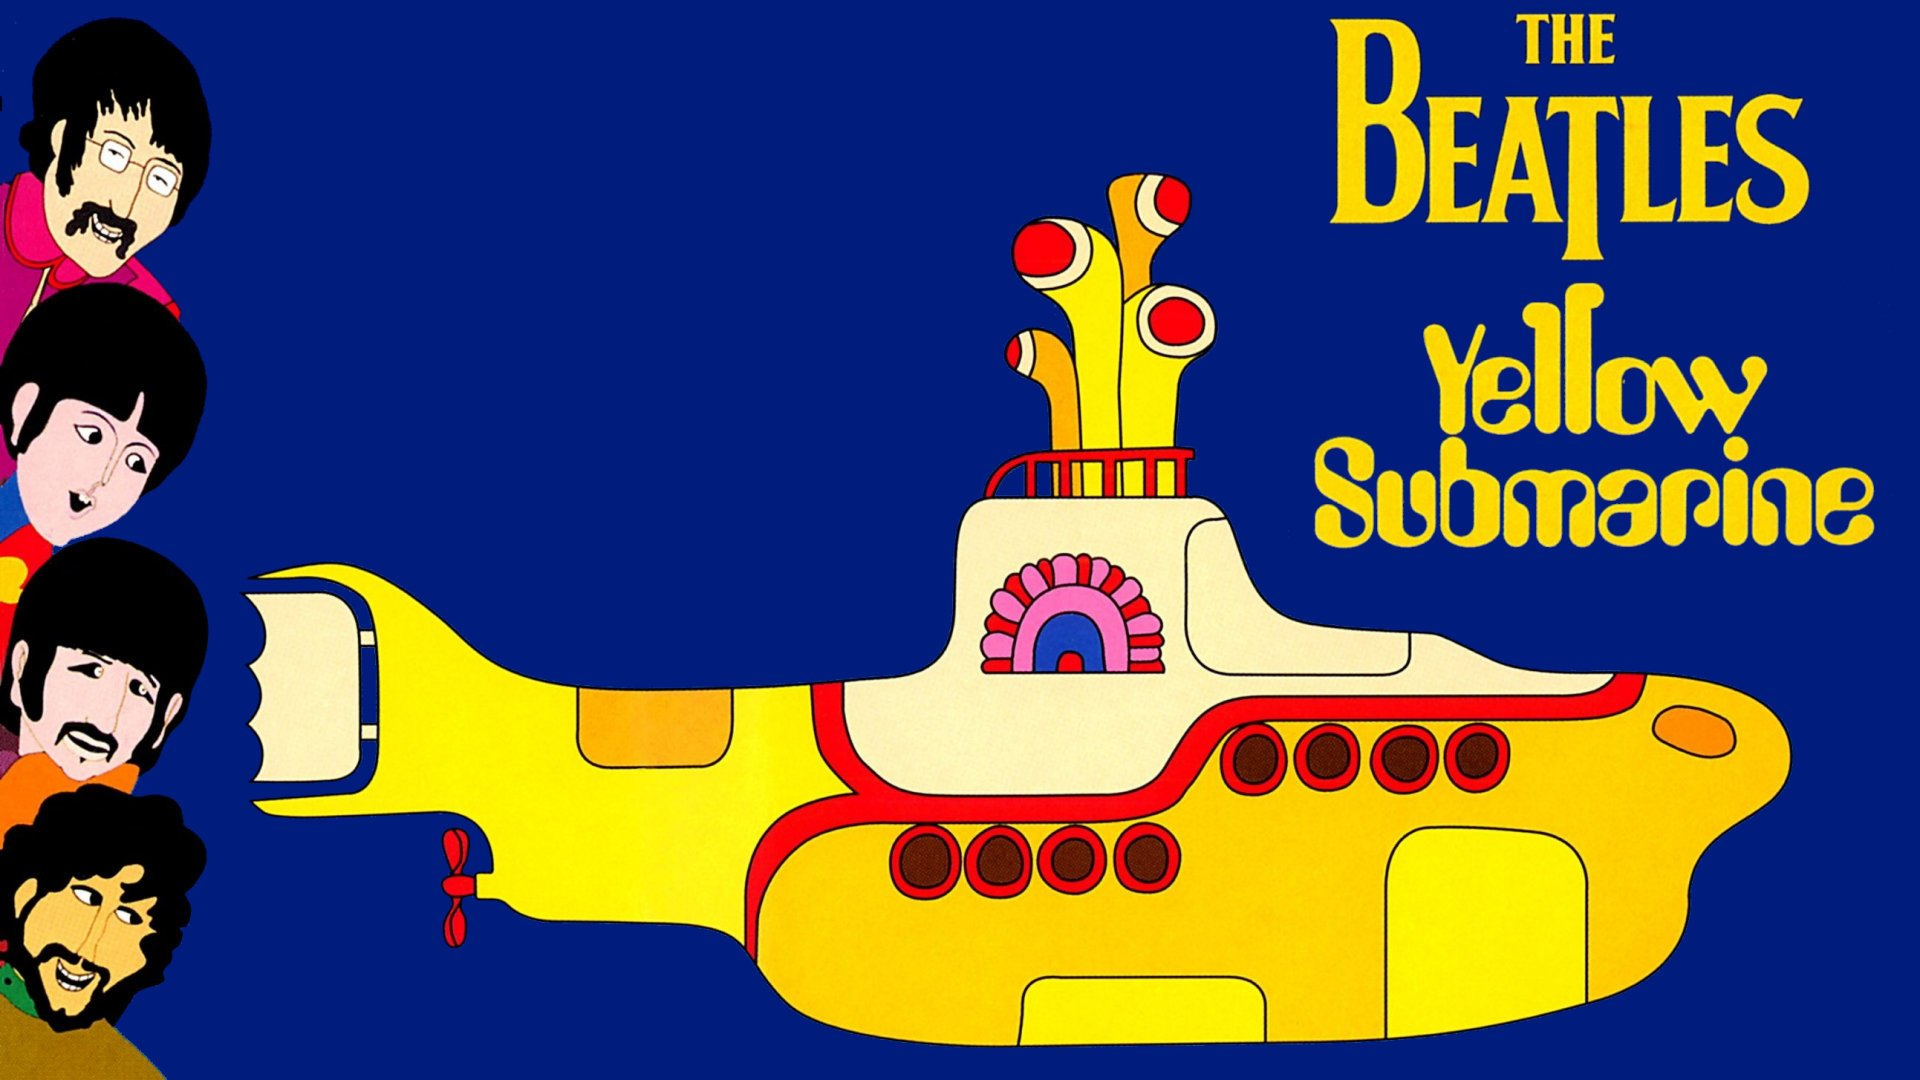 The Beatles In Yellow Submarine HD Wallpaper Background Image 1920x1080